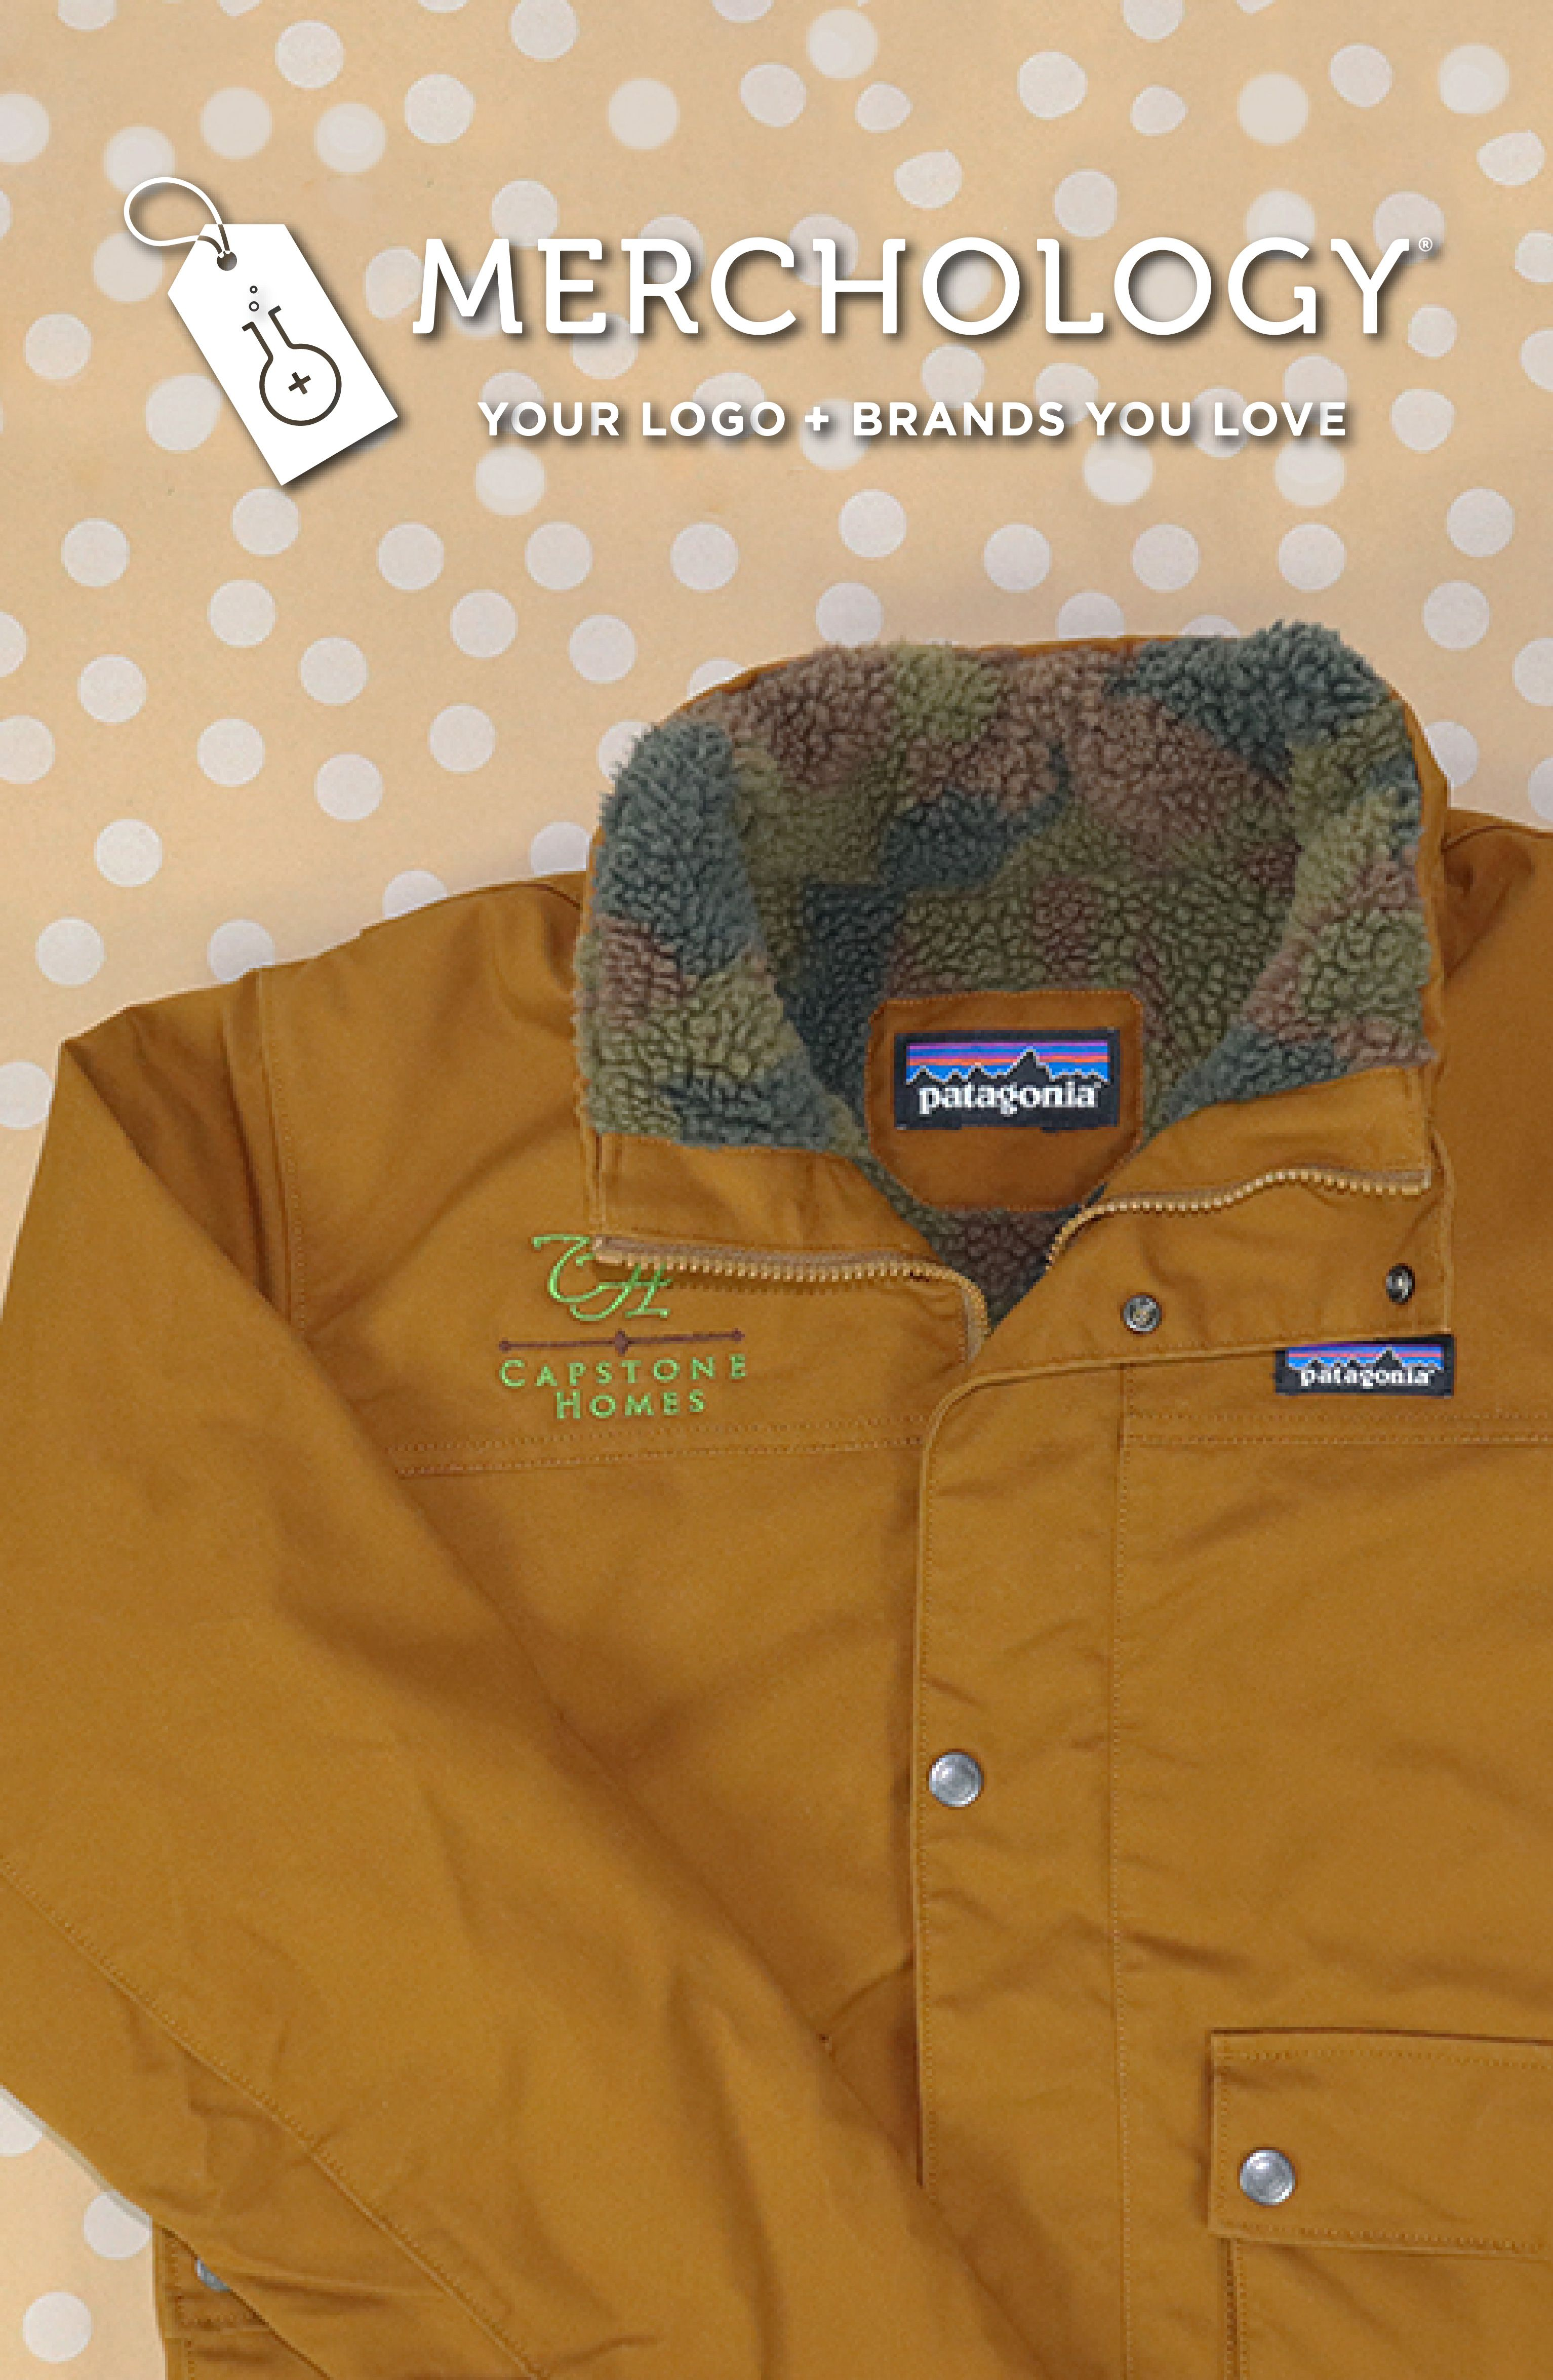 Customize all of your favorite Patagonia pieces with your